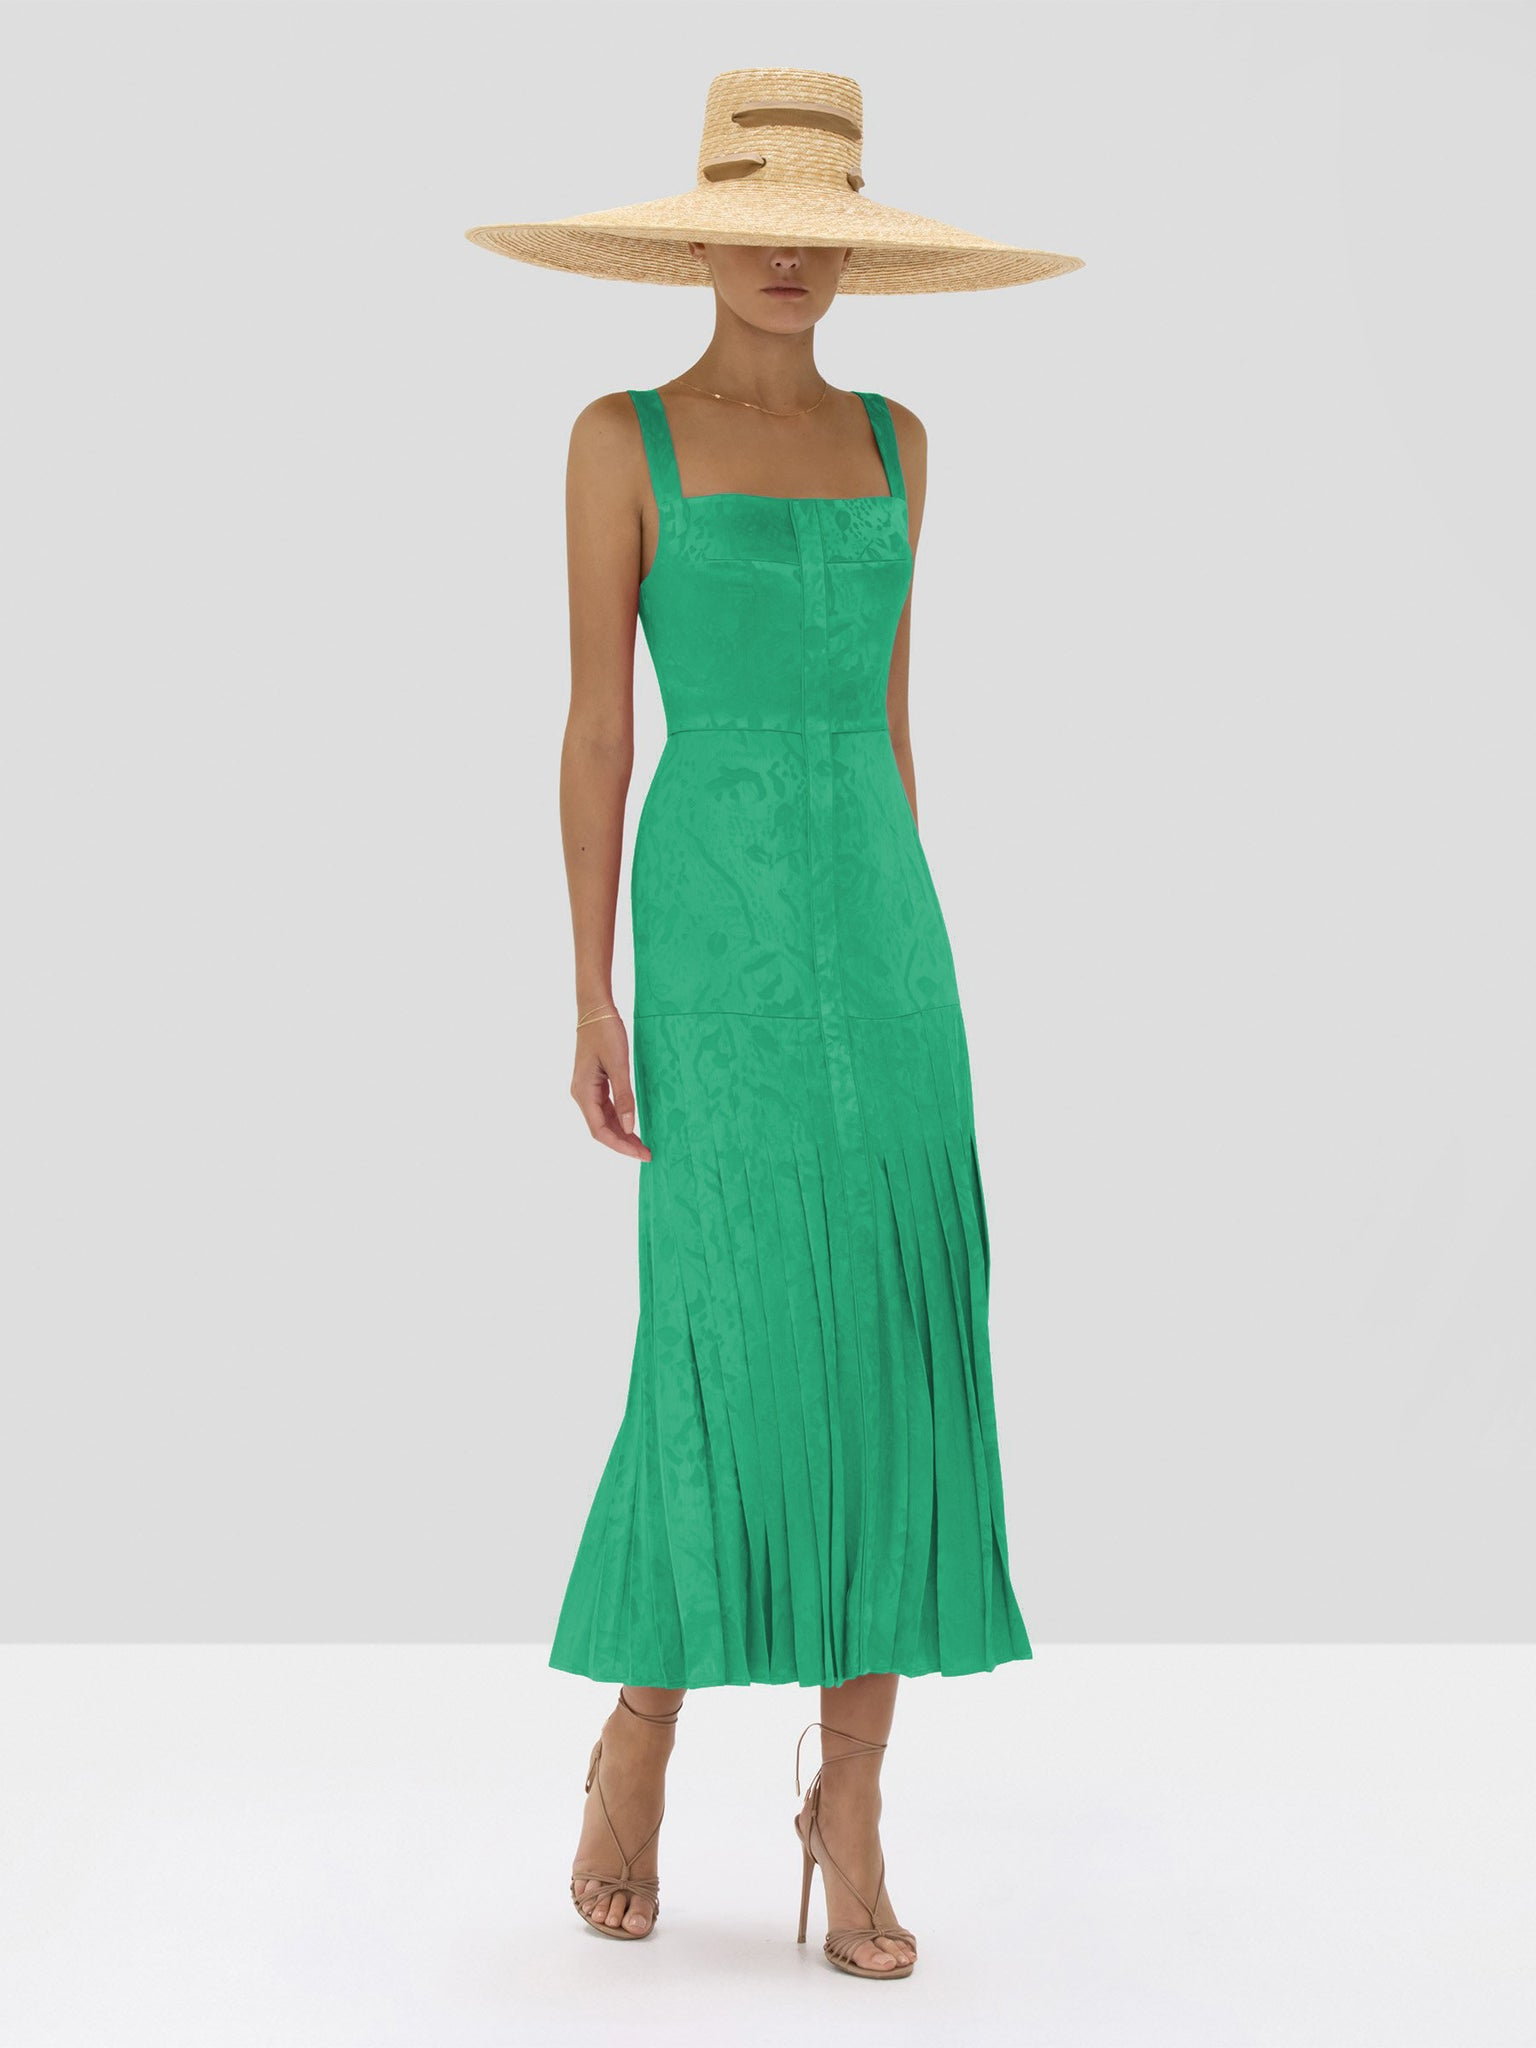 Alexis Oraina Dress in Emerald Green from Spring Summer 2020 Collection